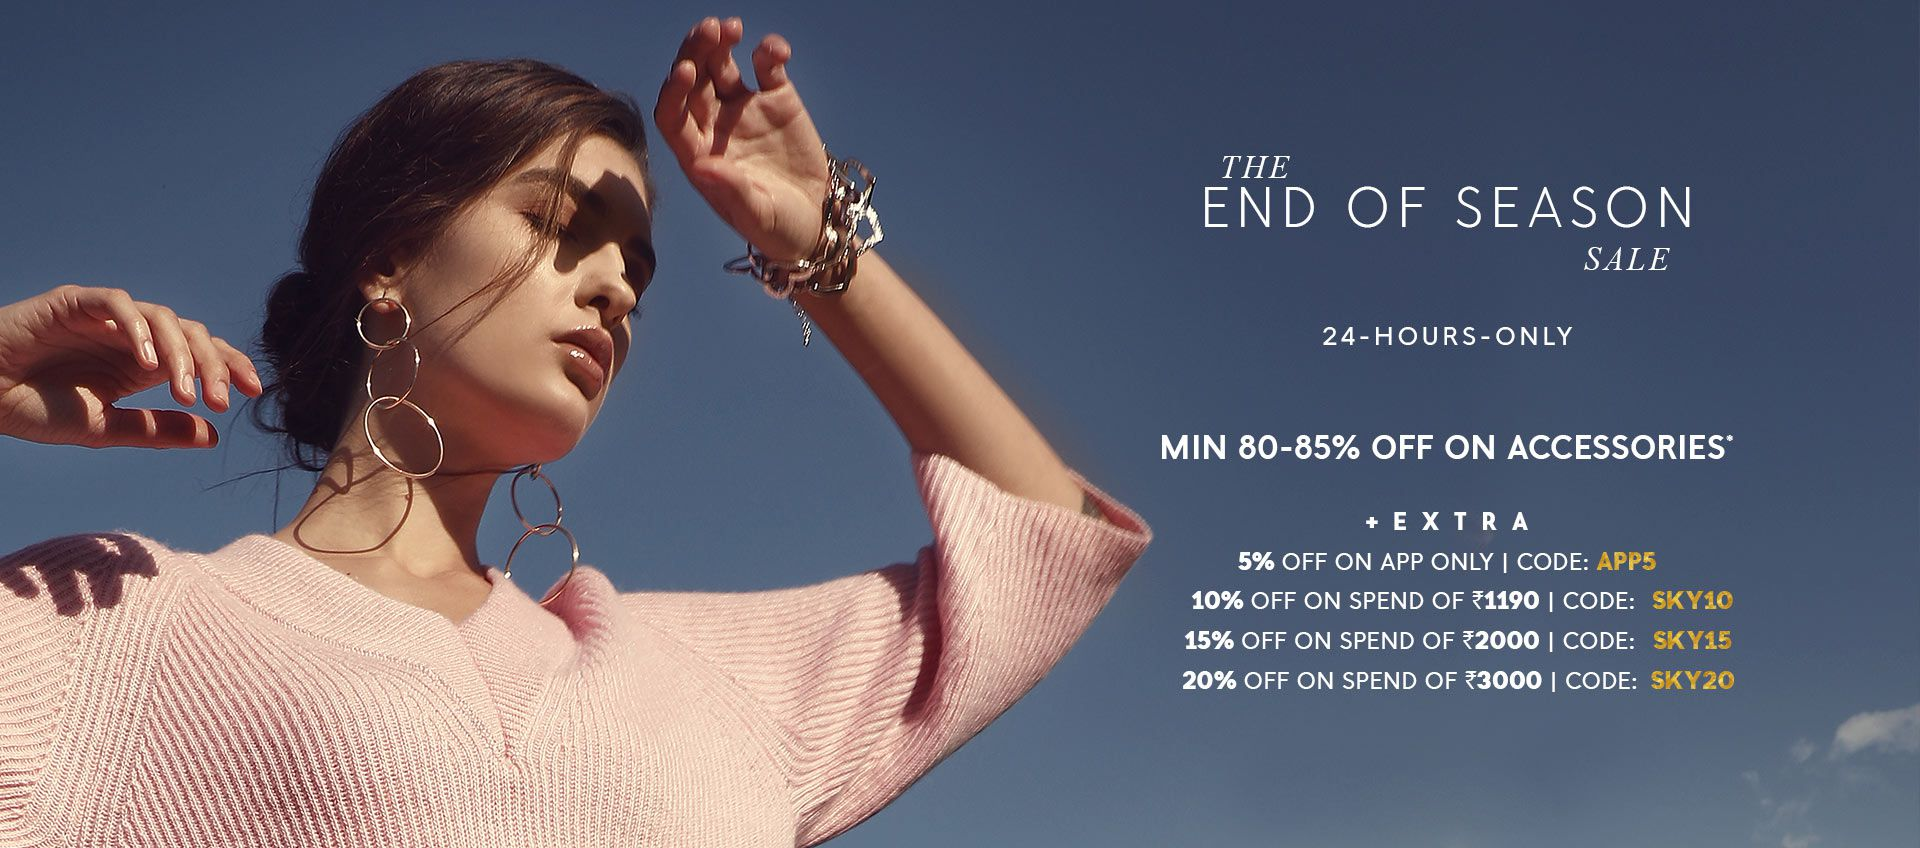 MIN 80-85% OFF ON ACCESSORIES